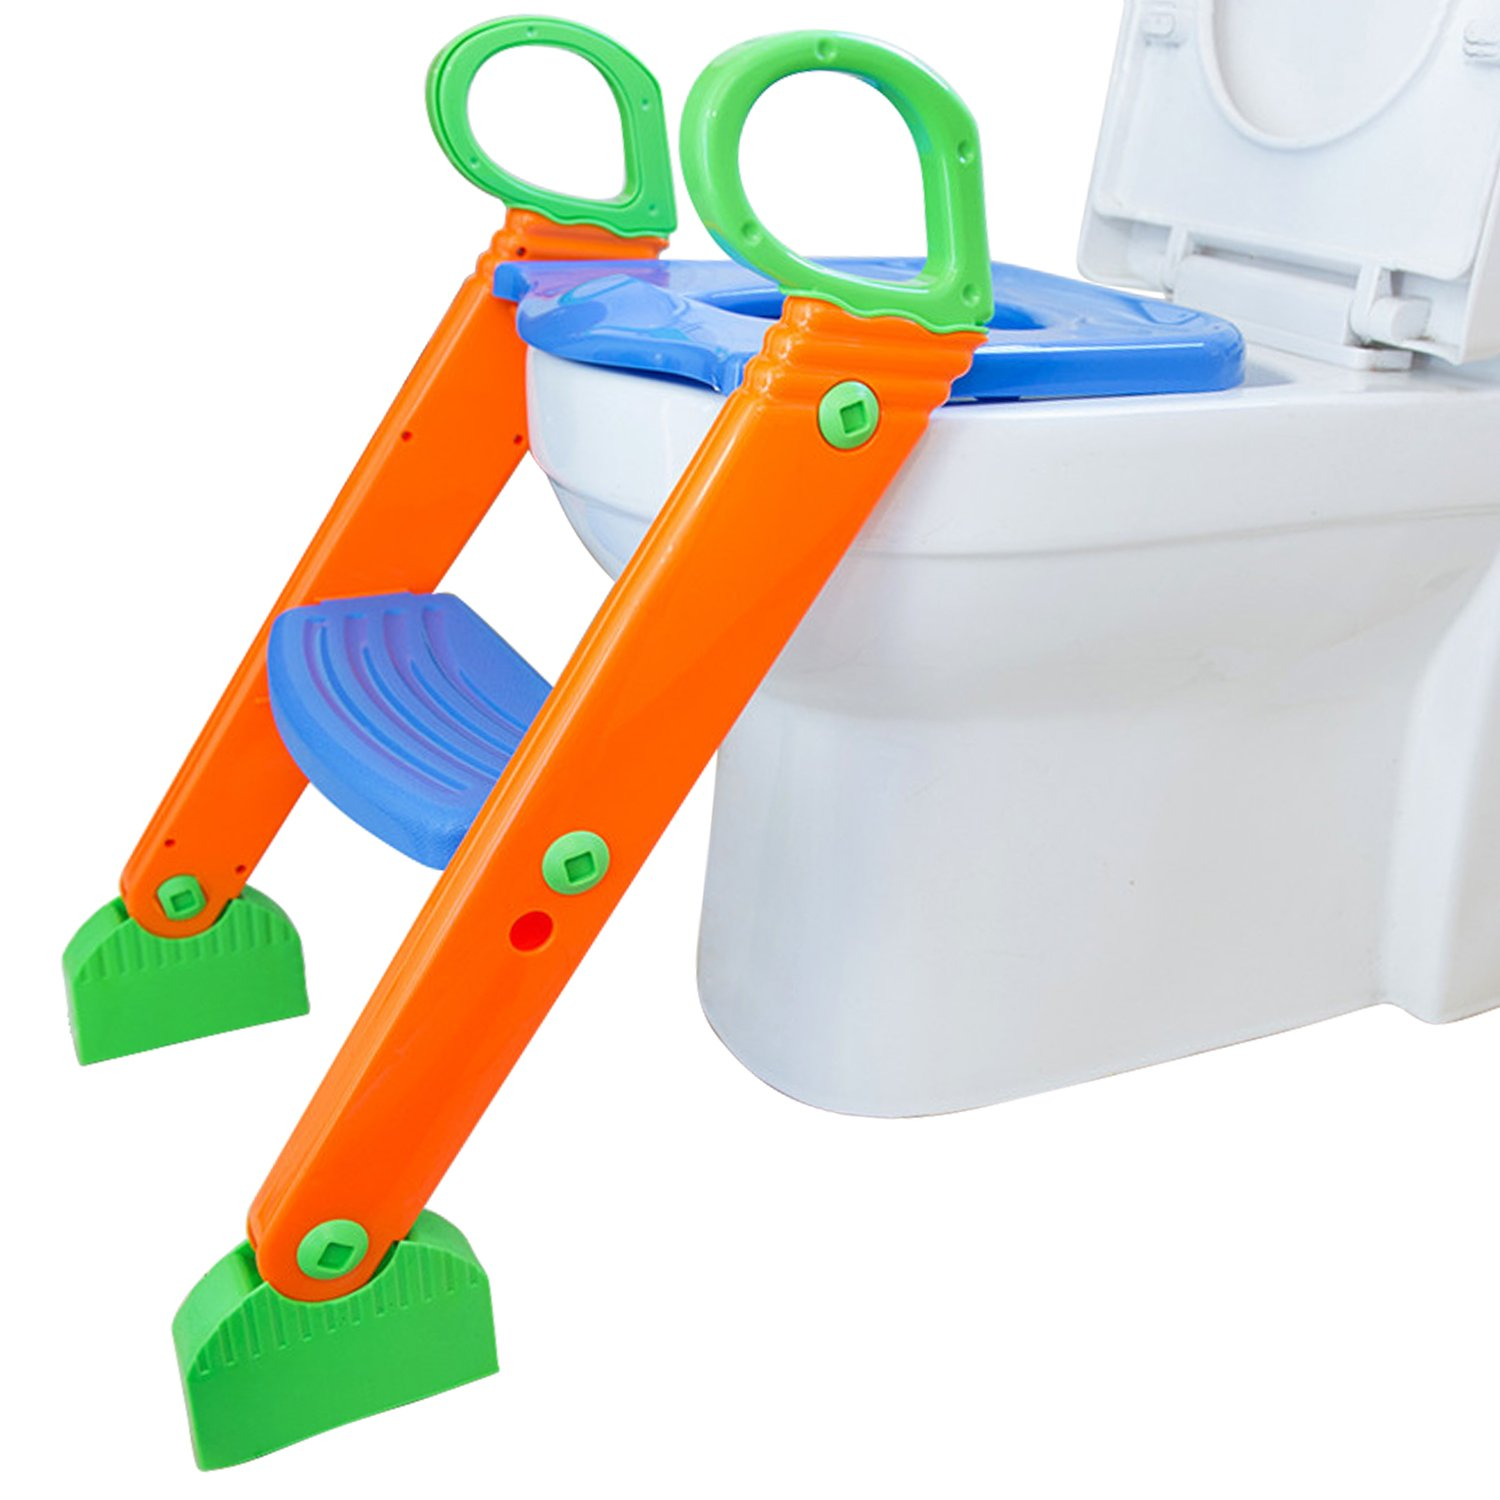 Beinhome Potty Training Seat with Non-Slip Ladder Adjustable Baby 2 in 1 Training Step Stool, Comfortable & Safe Padded Potty Trainer Toilet Seat Chair for Boys Girls by Beinhome